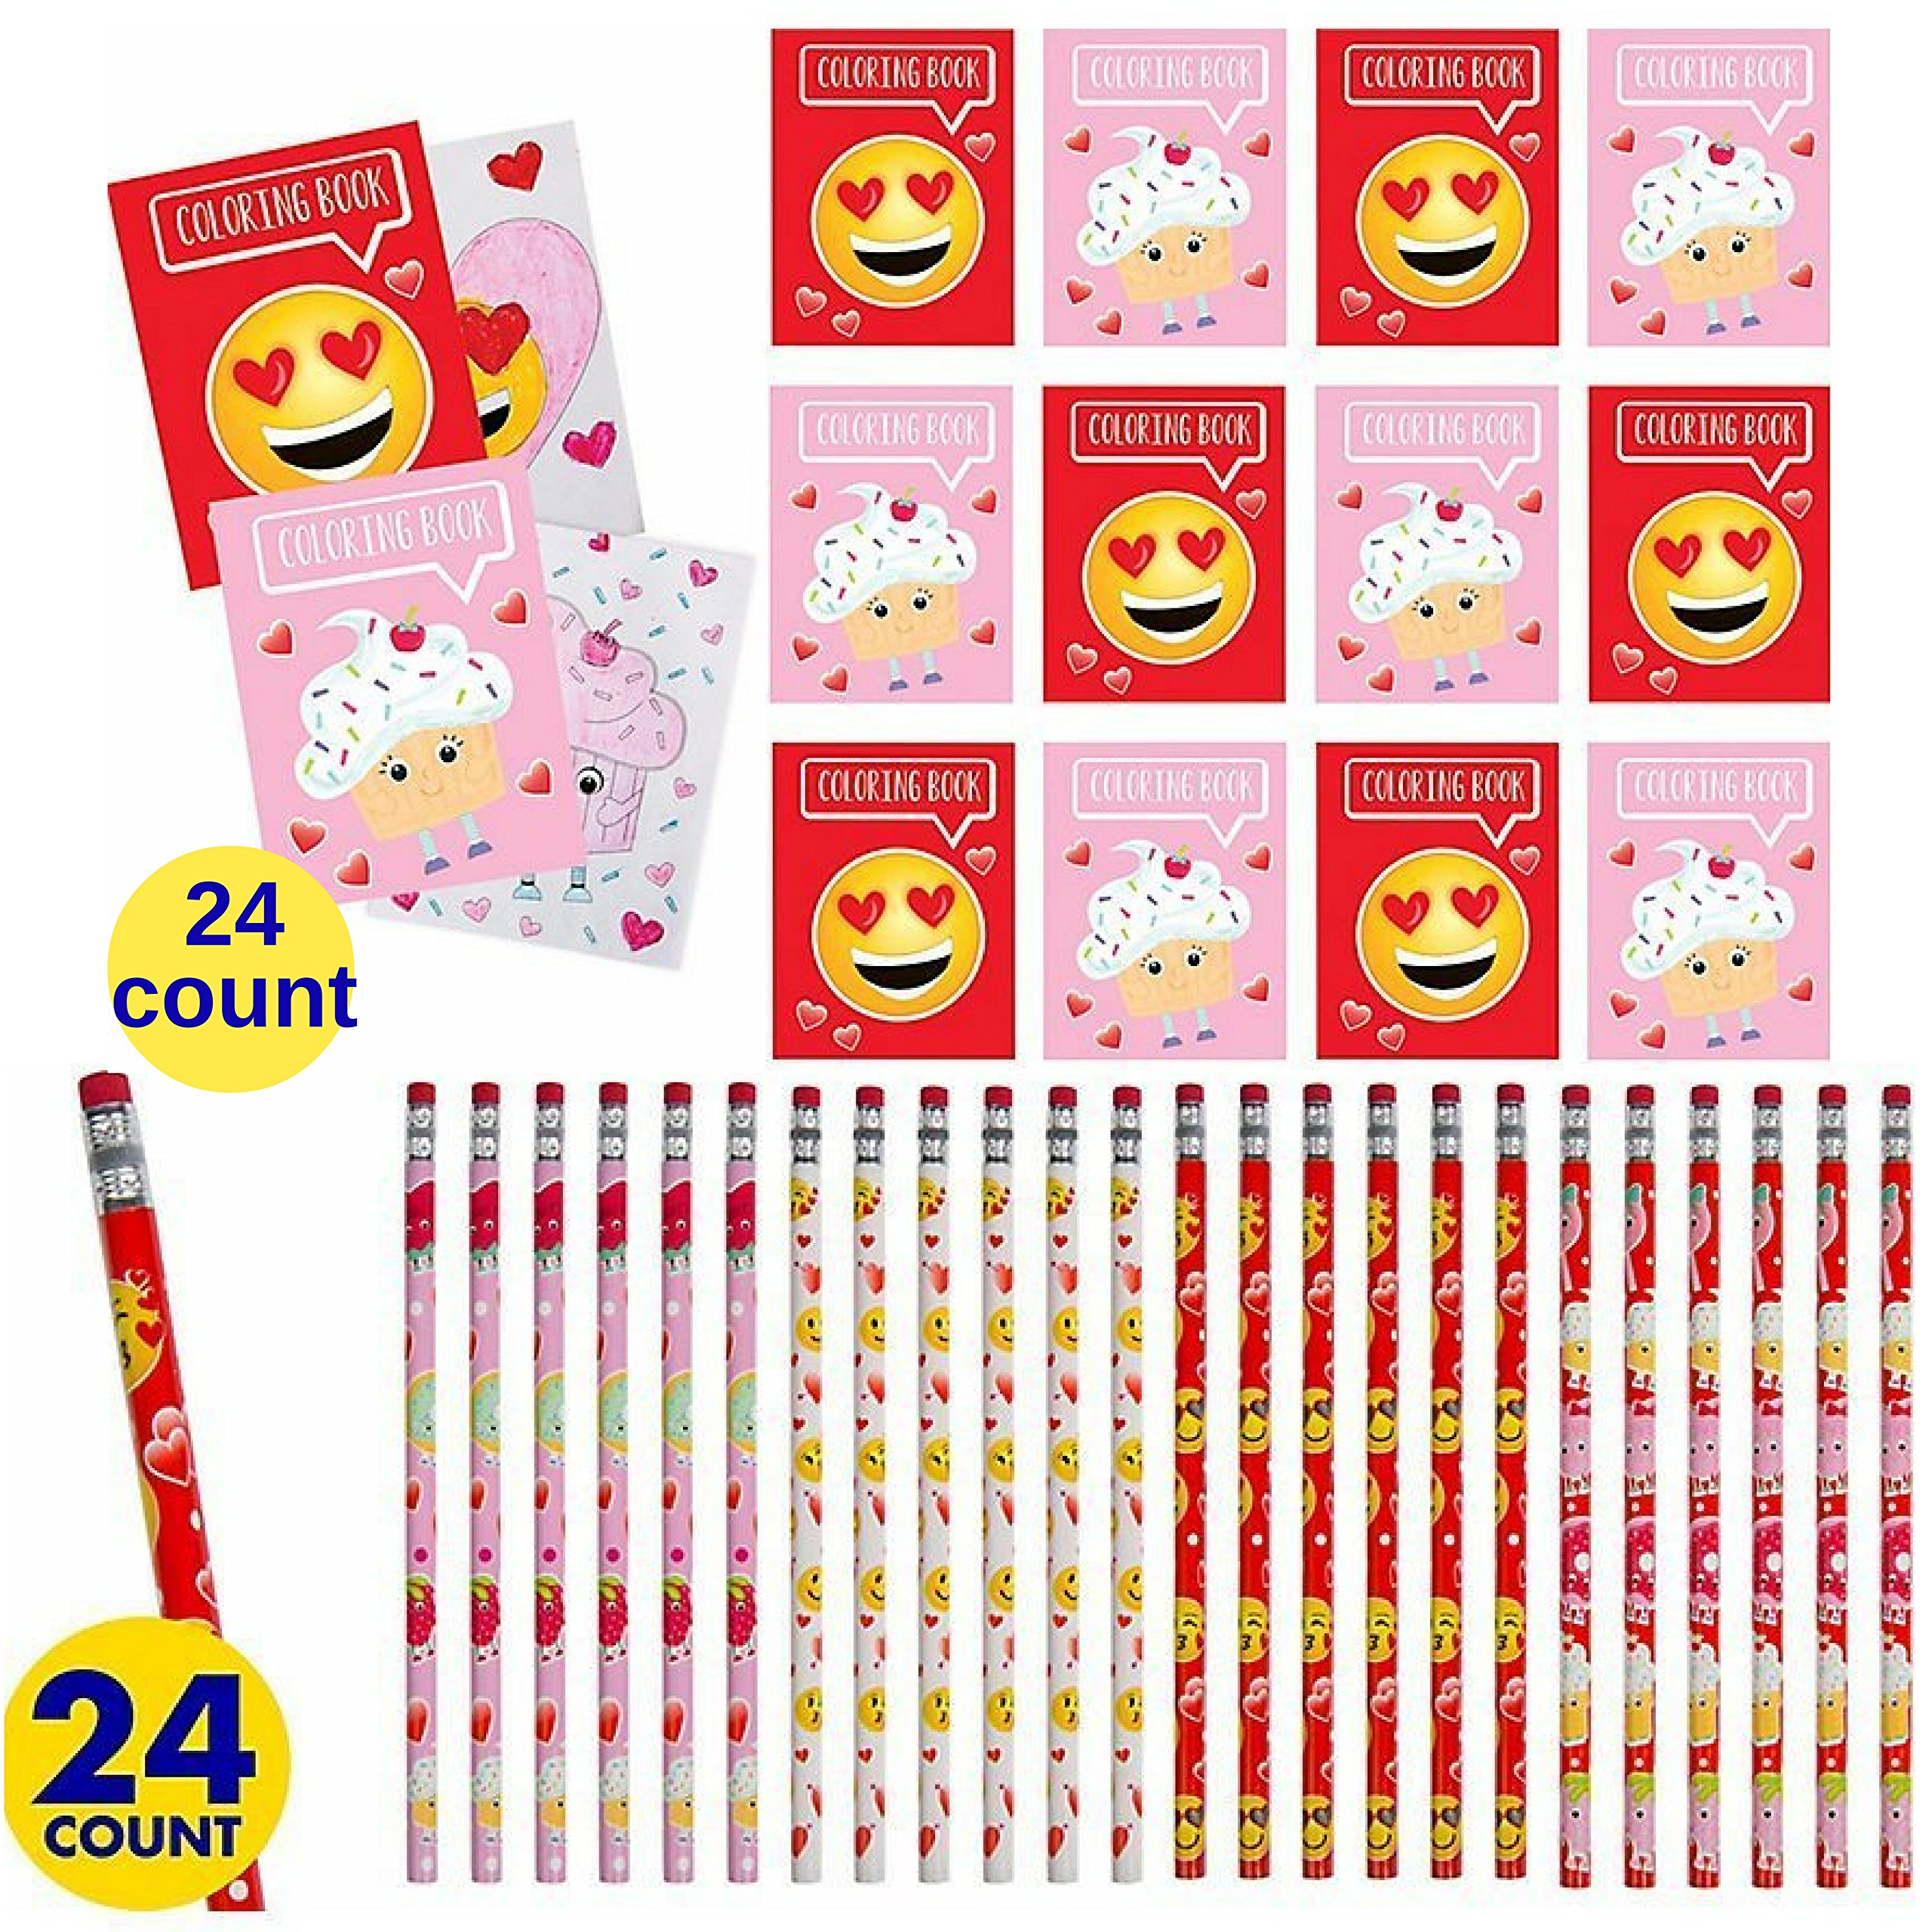 Valentines Emoticon Coloring Pages and Pencils, set of 48 pieces Party Favors by Custom Variety (Image #1)